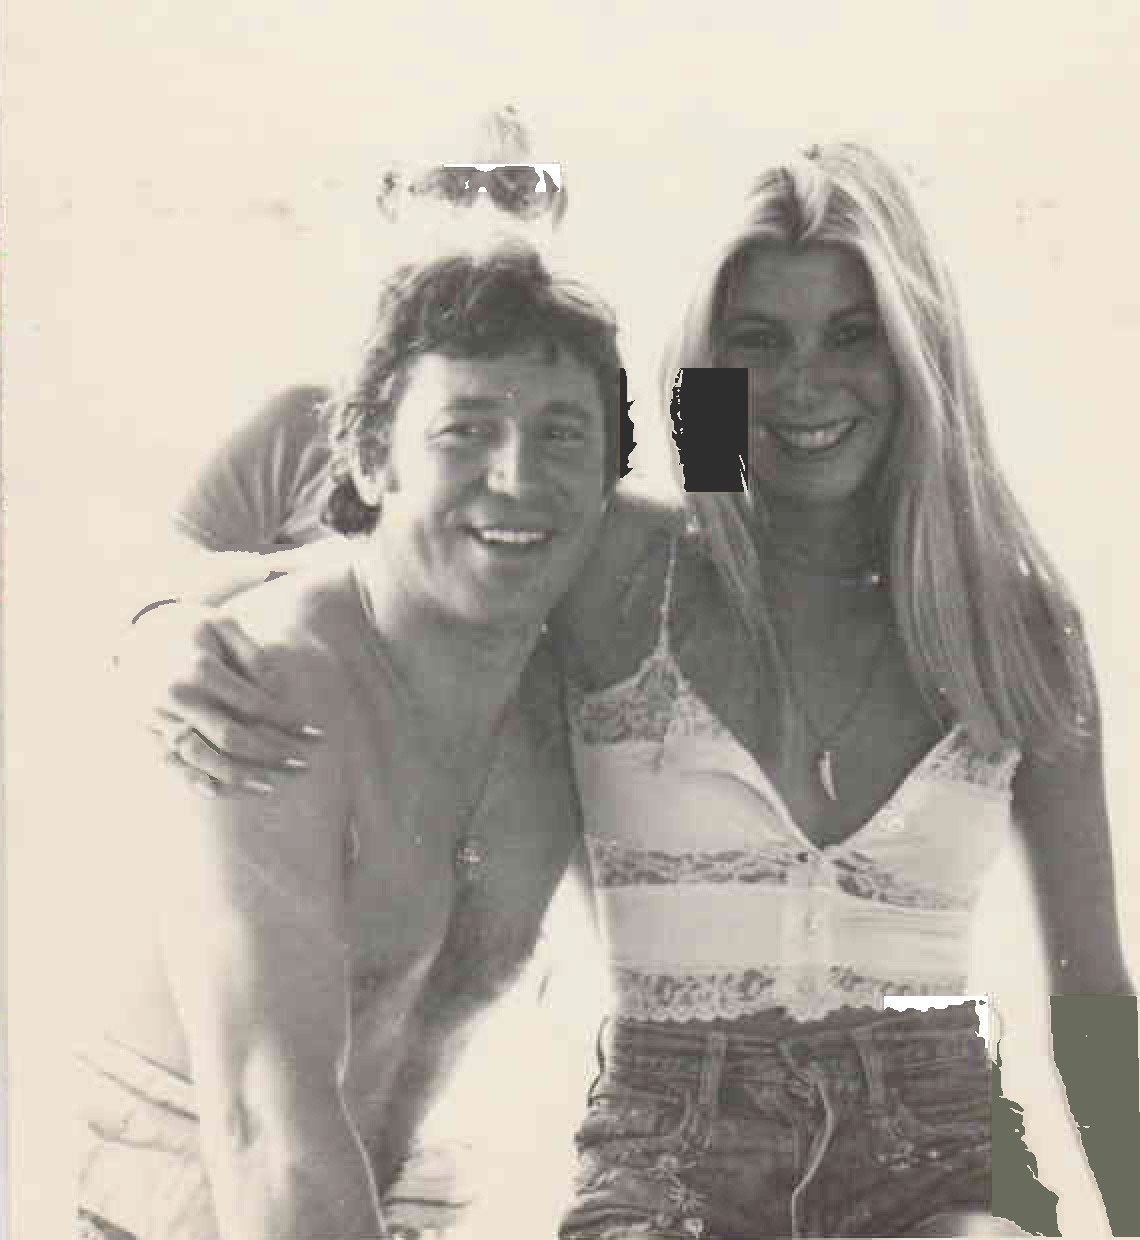 Mario Andretti and Kathy in South Africa 1978 Kyalami racetrack